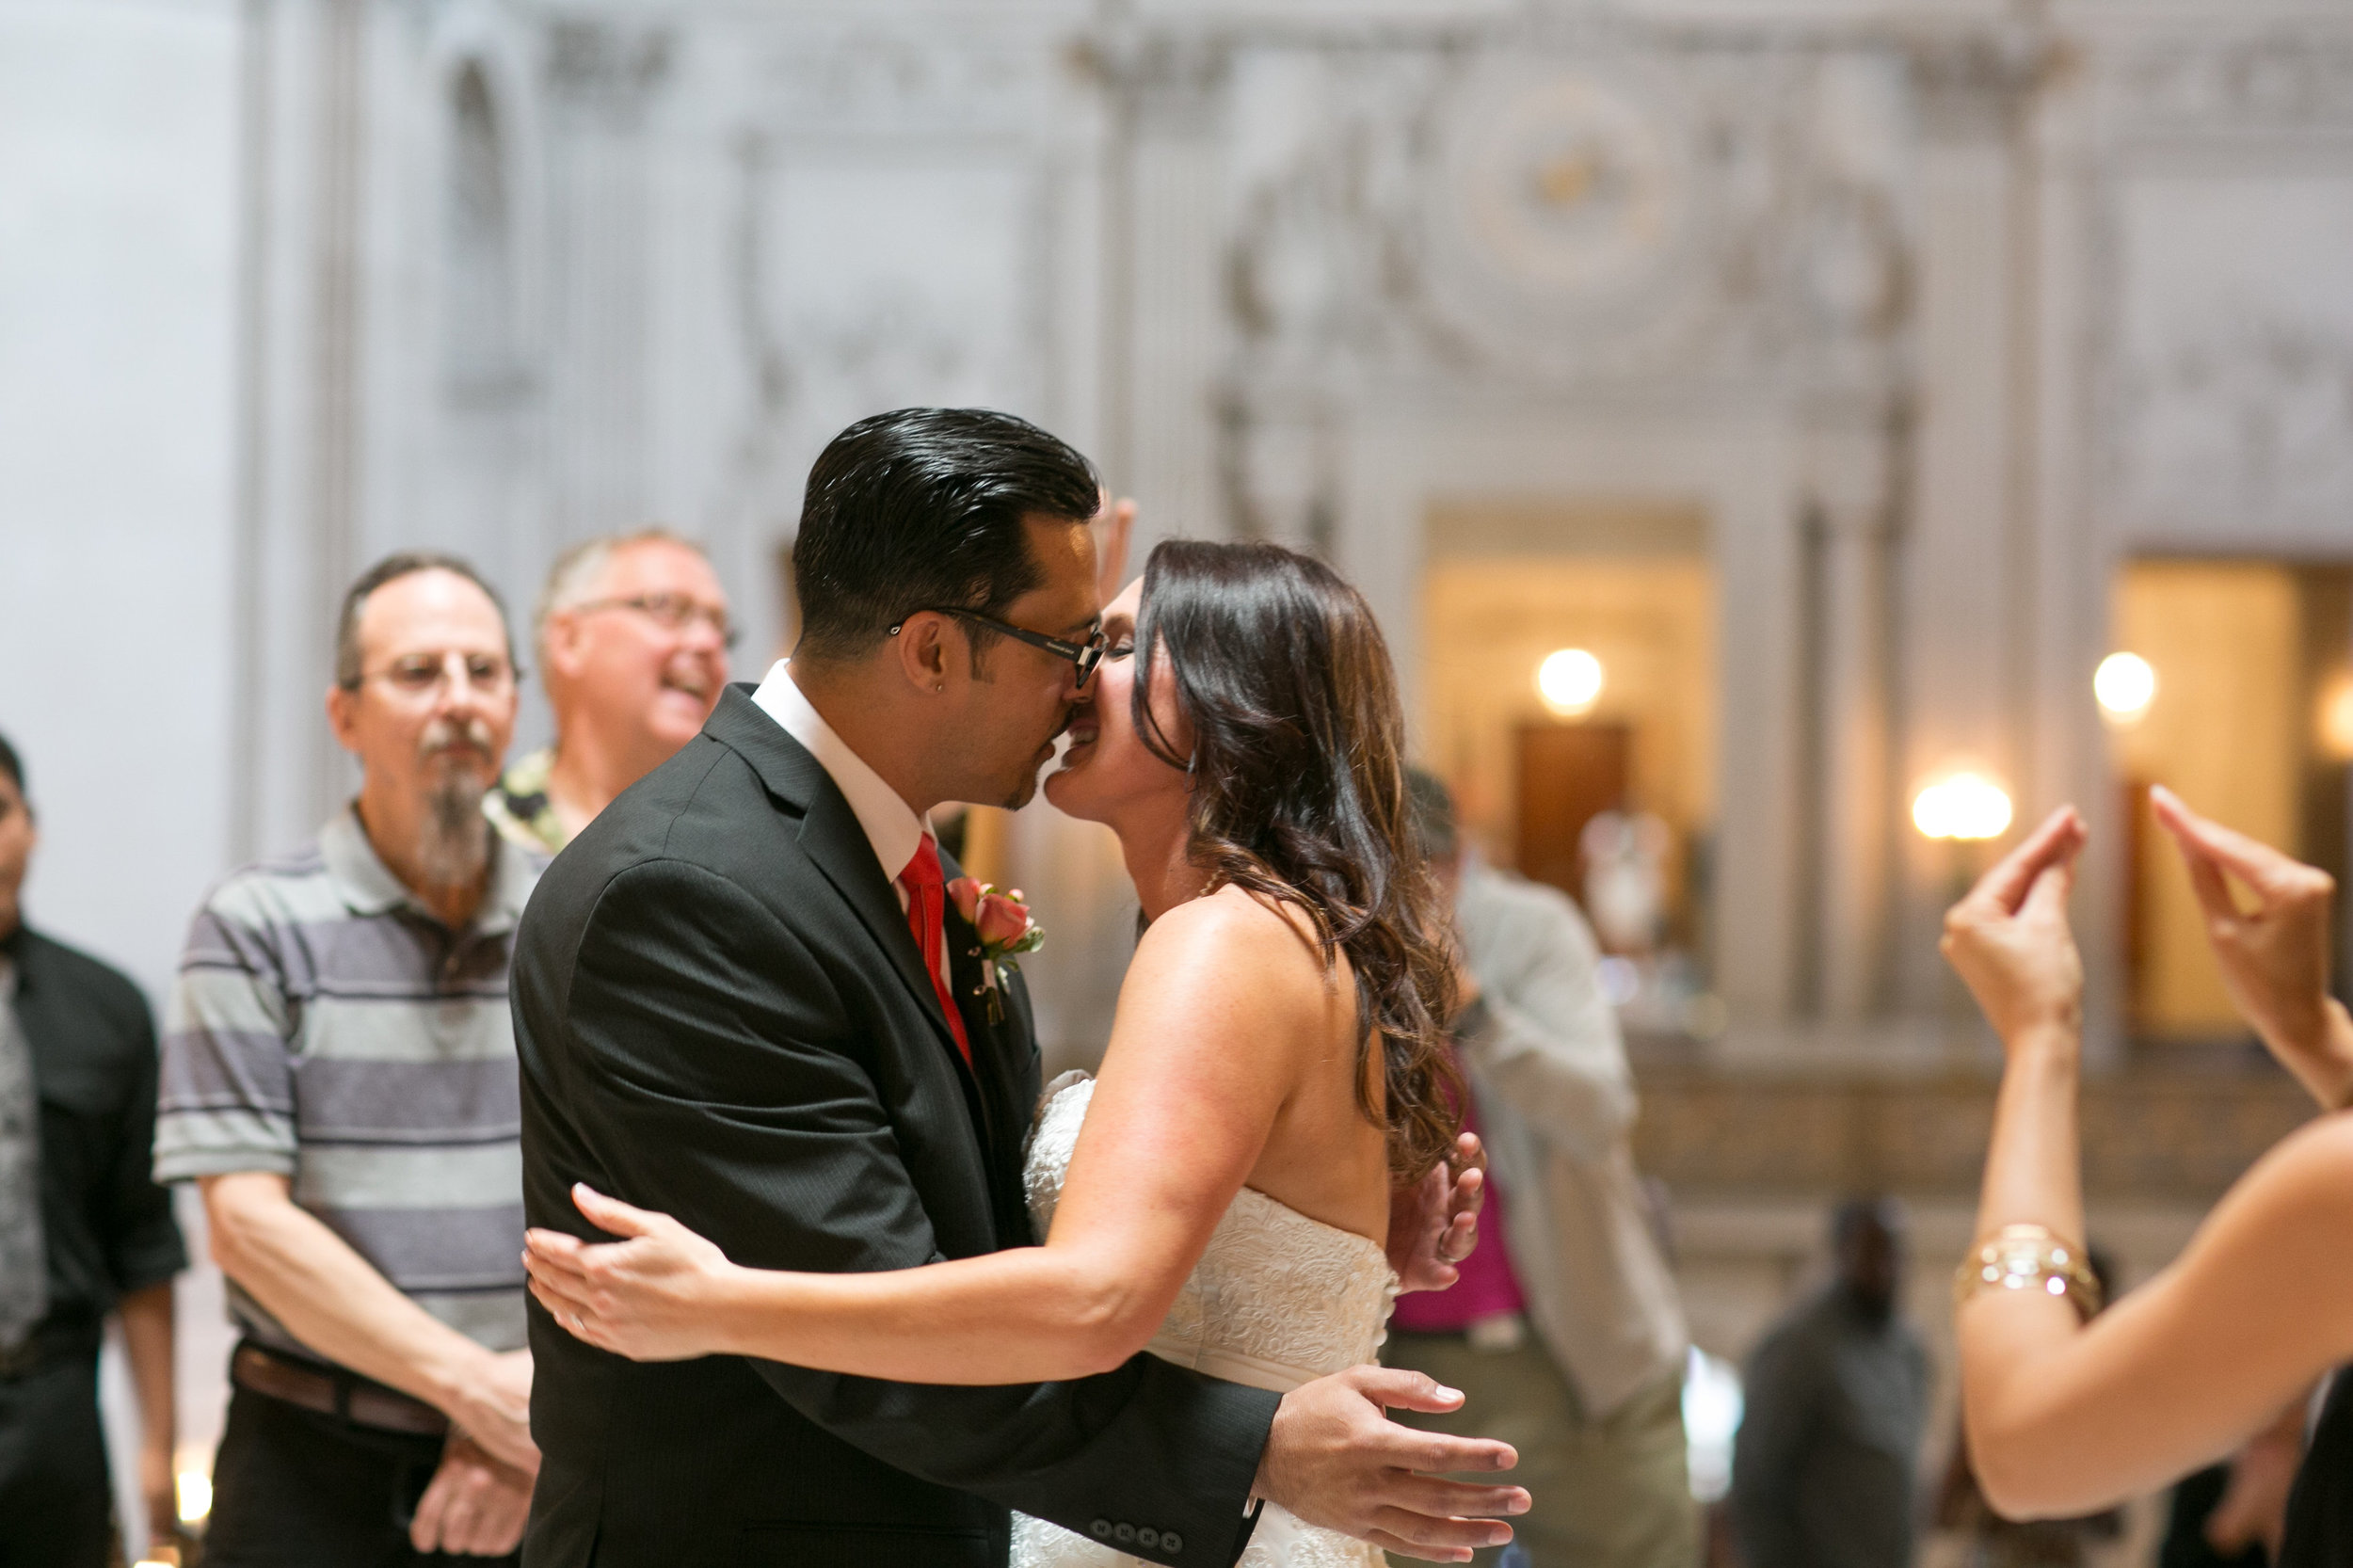 san francisco city hall wedding david kim photography 4.jpg